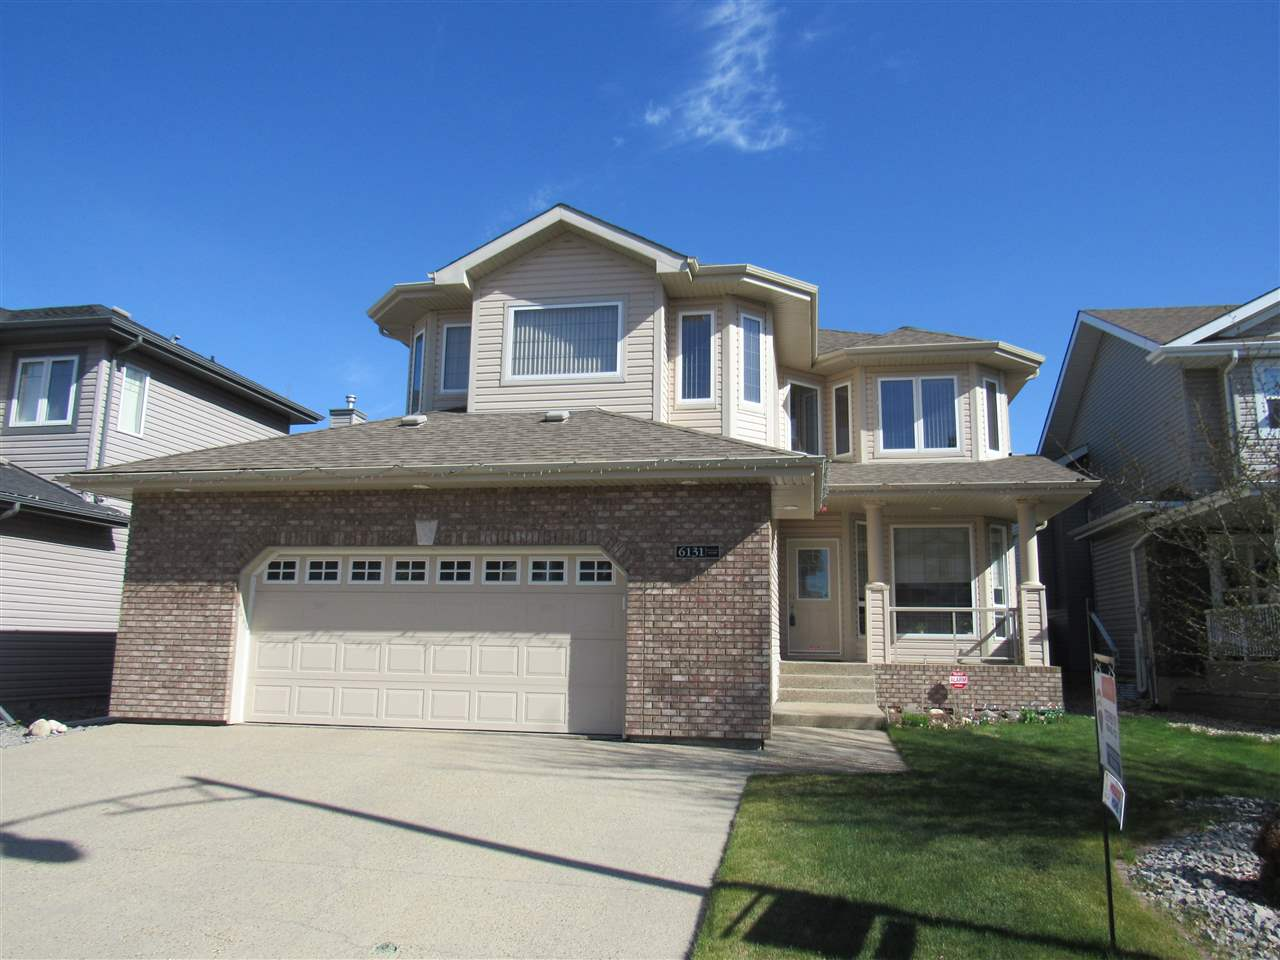 MLS® listing #E4156398 for sale located at 6131 MAYNARD Crescent